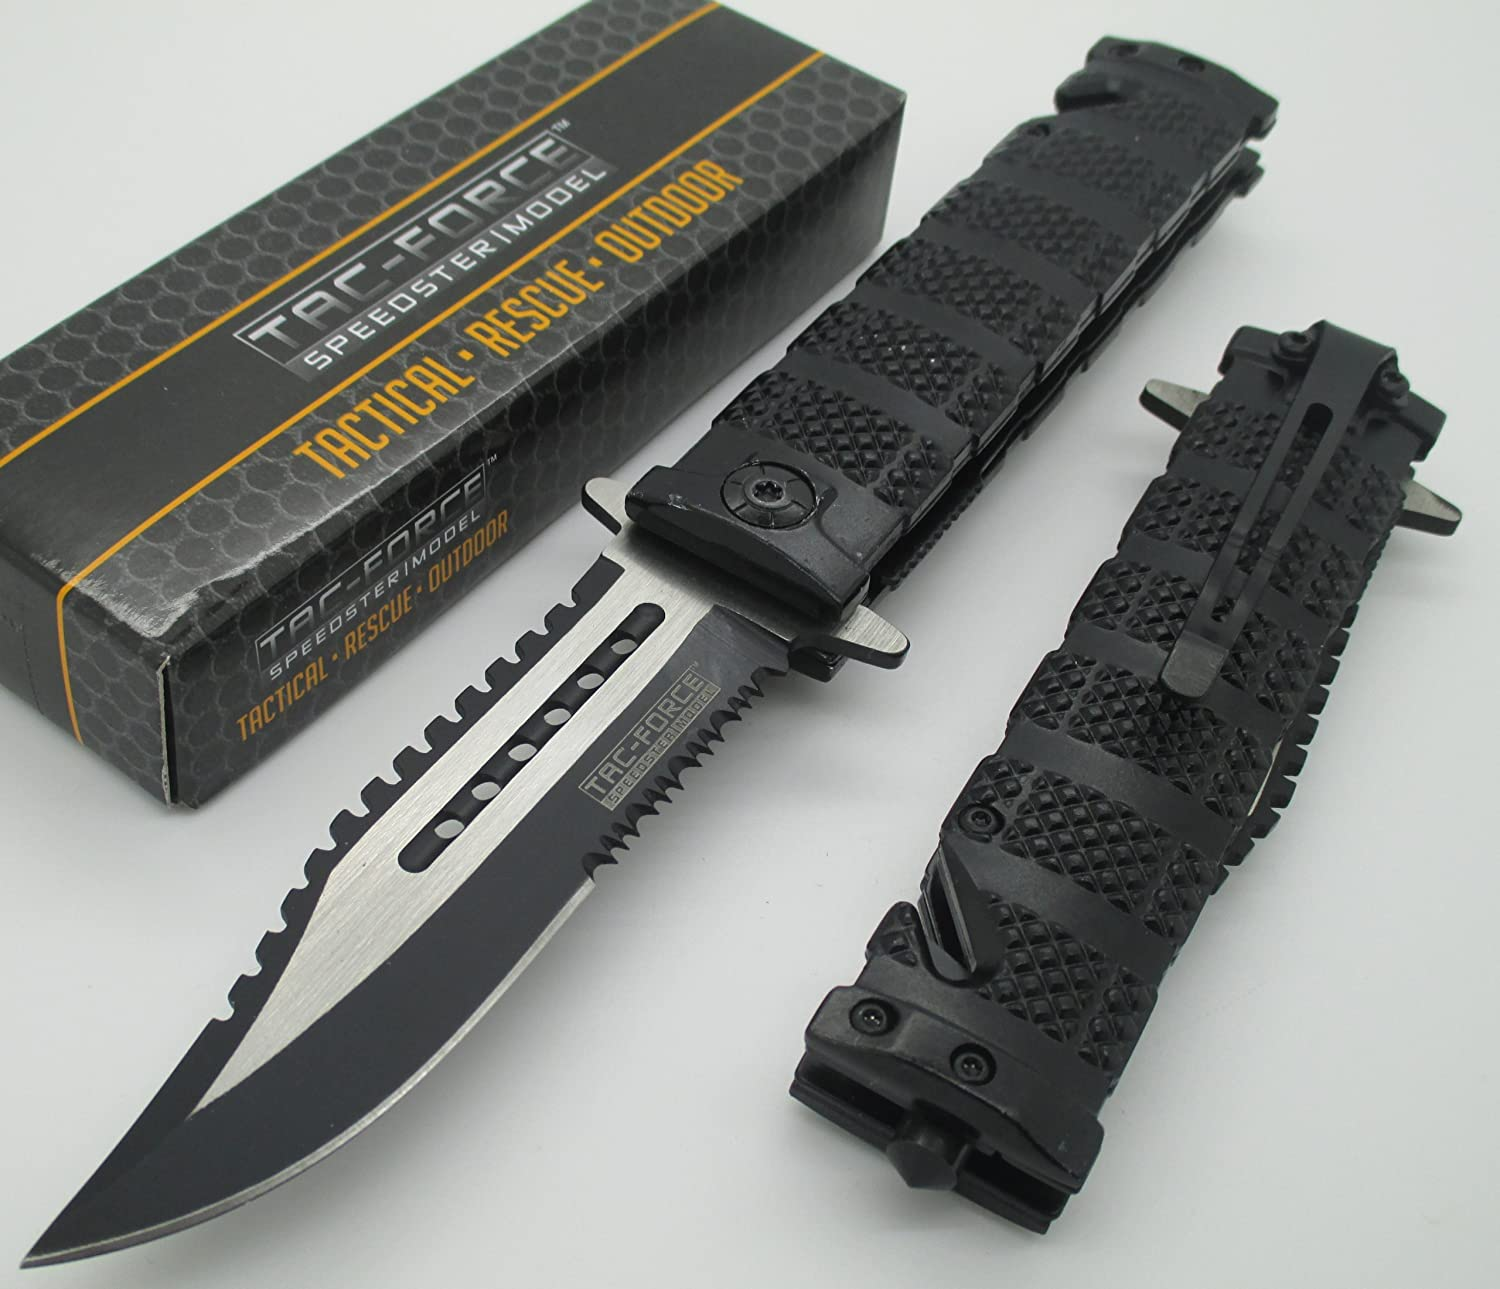 Tac-force Assisted Opening Saw...